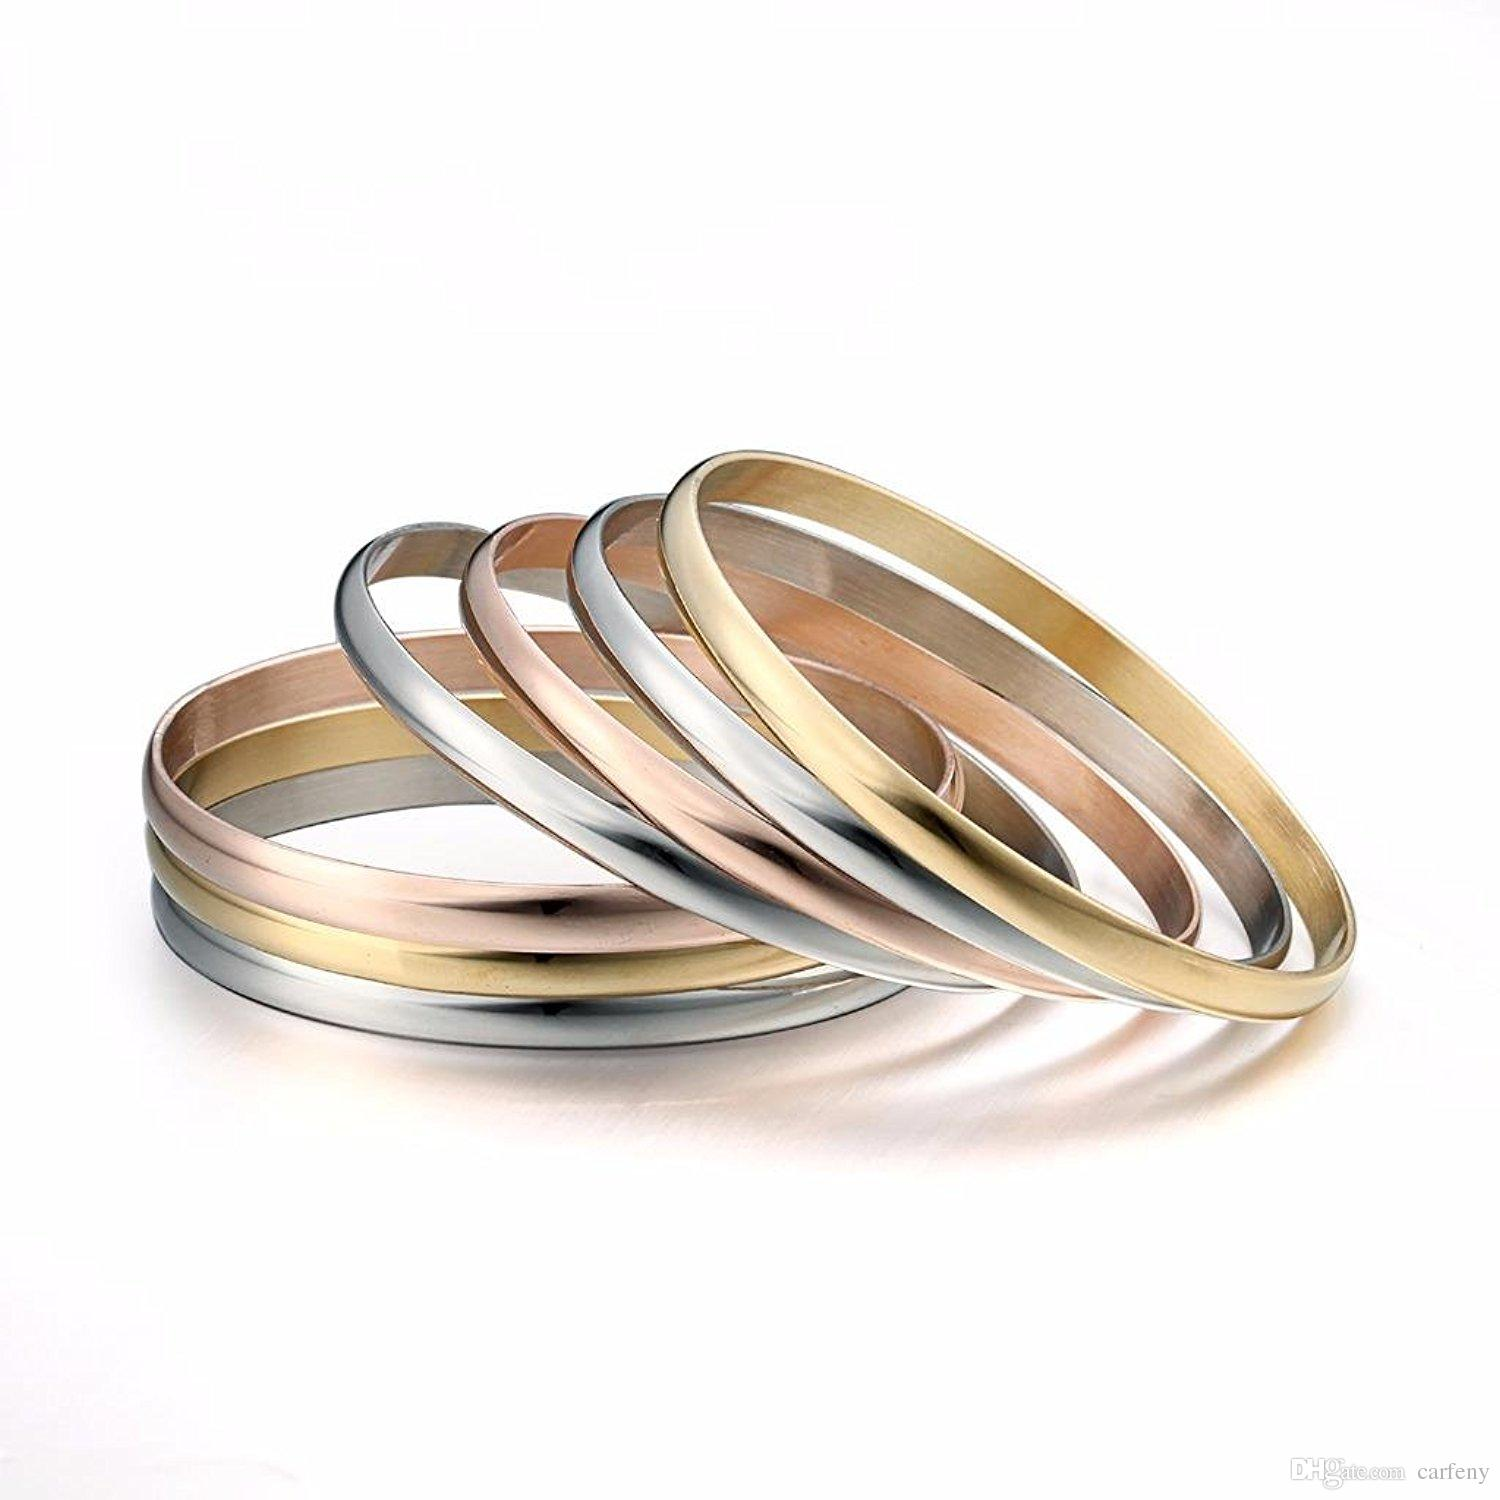 silver hoops sterling bracelets bracelet handmade with bangle solid gold bangles set and k